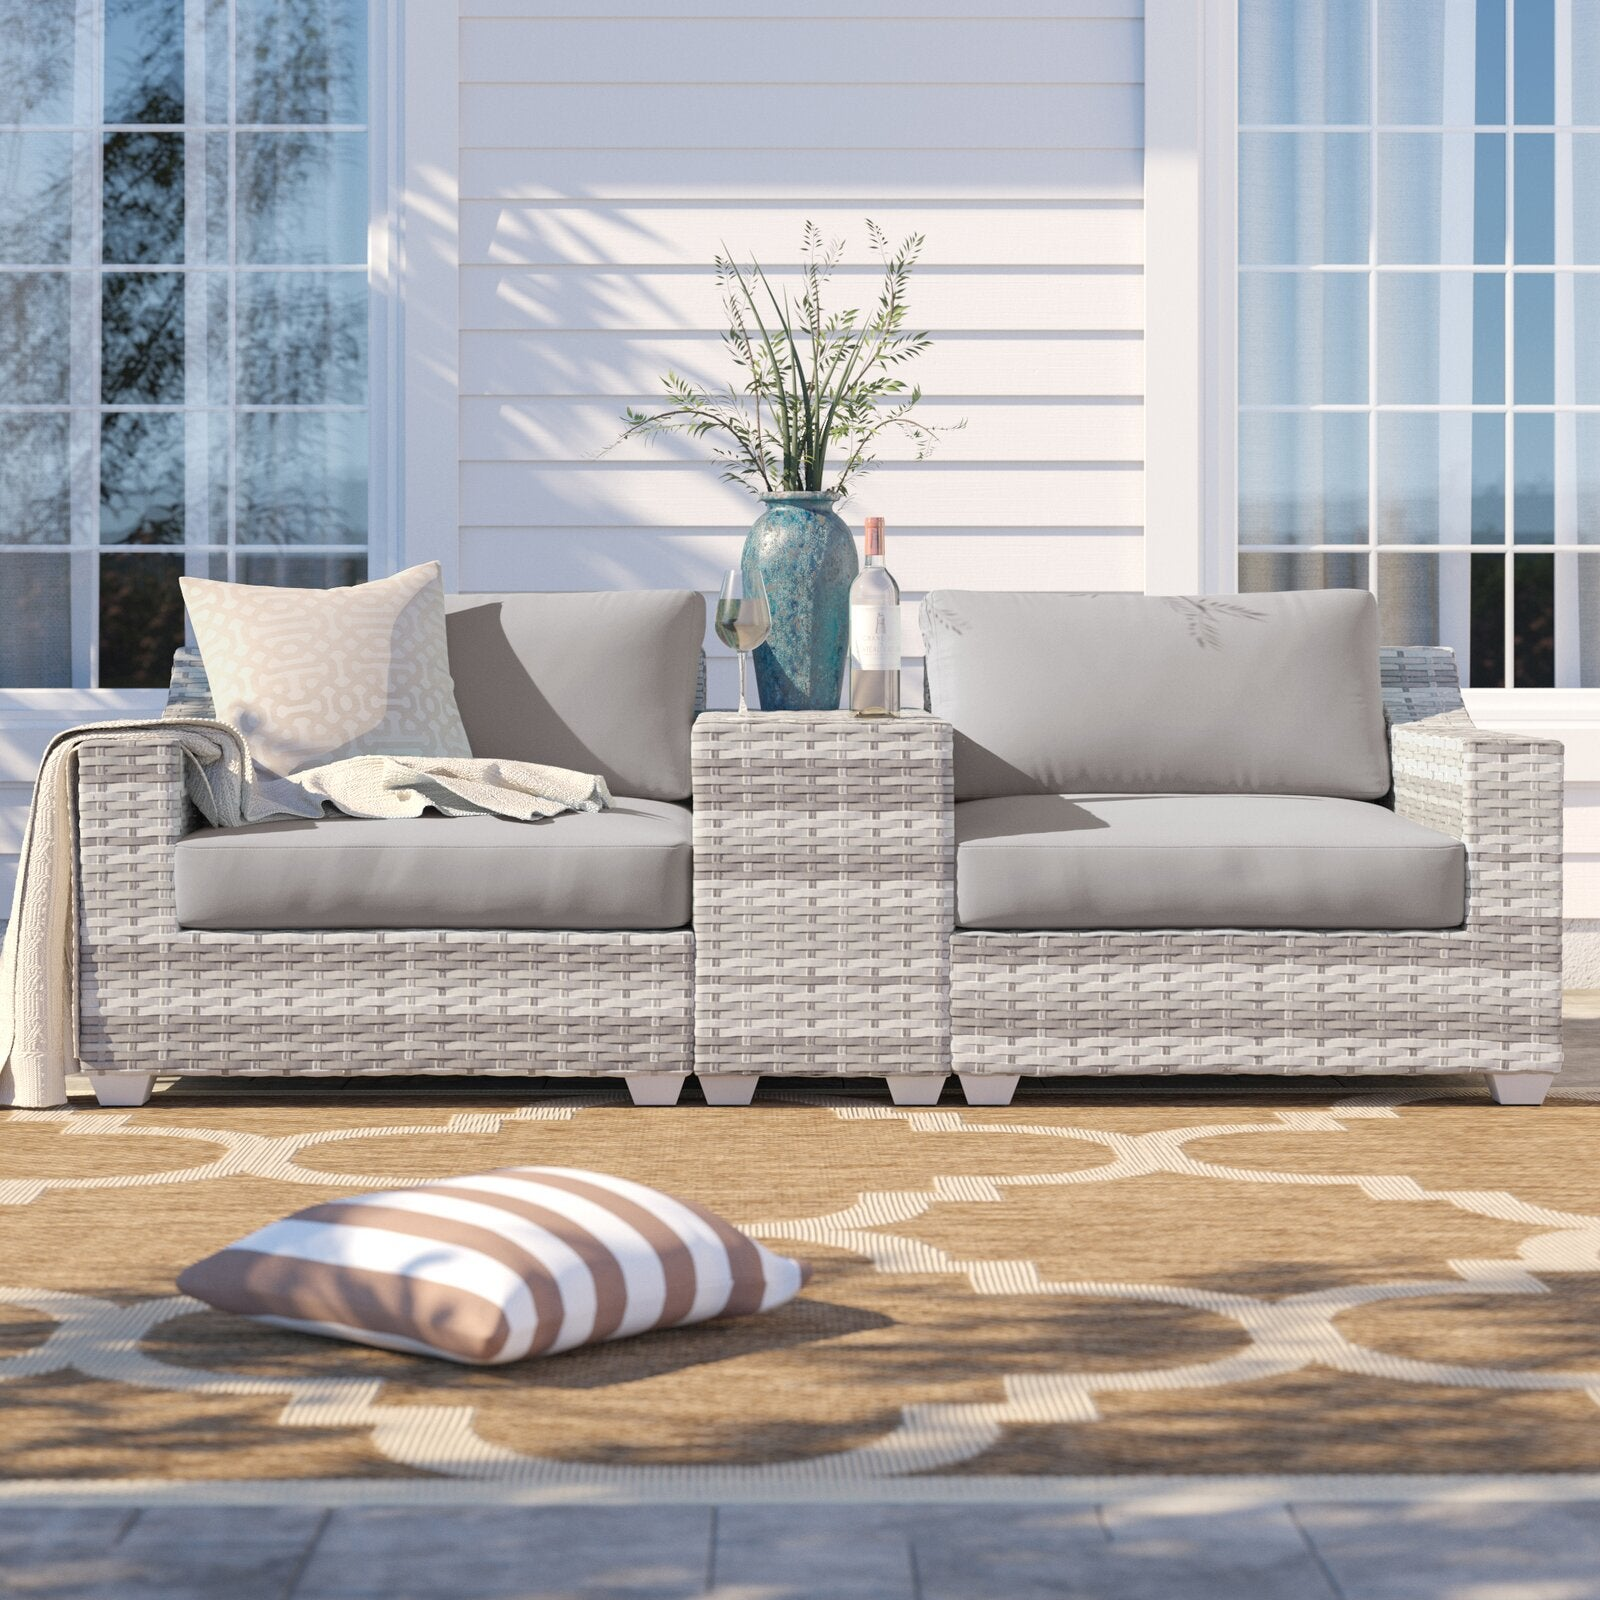 Sol 72 Outdoor Falmouth 3 Piece Rattan Seating Group with Cushions